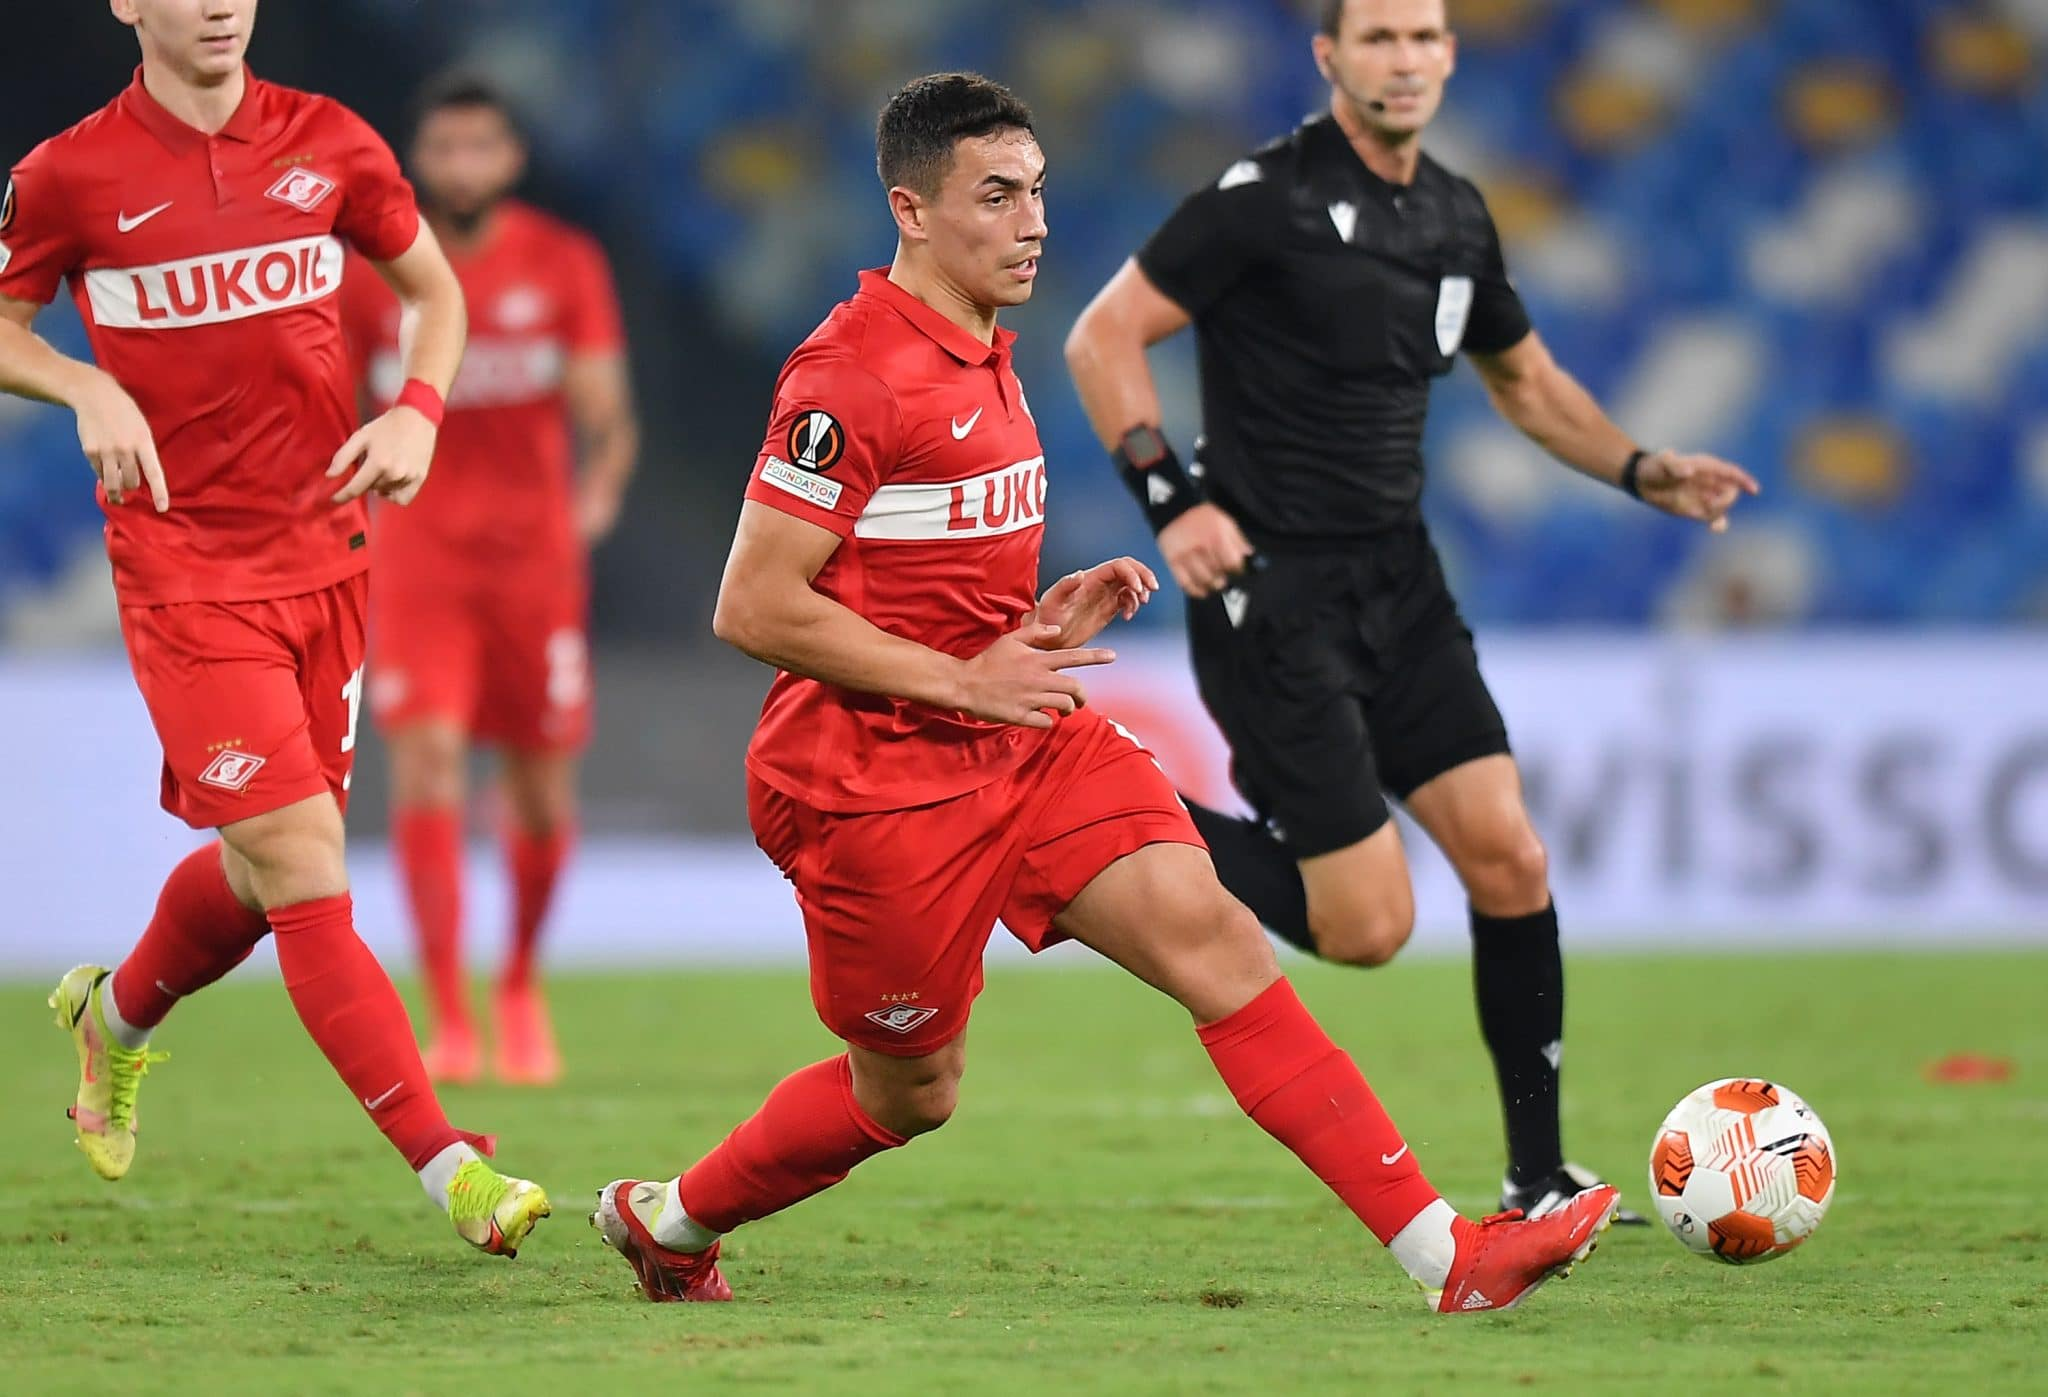 NAPLES, ITALY - SEPTEMBER 30: Ezequiel Ponce of Spartak Moskva kicks the ball during the UEFA Europa League group C match between SSC Napoli and Spartak Moskva at Stadio Diego Armando Maradona on September 30, 2021 in Naples, Italy. (Photo by Francesco Pecoraro/Getty Images)